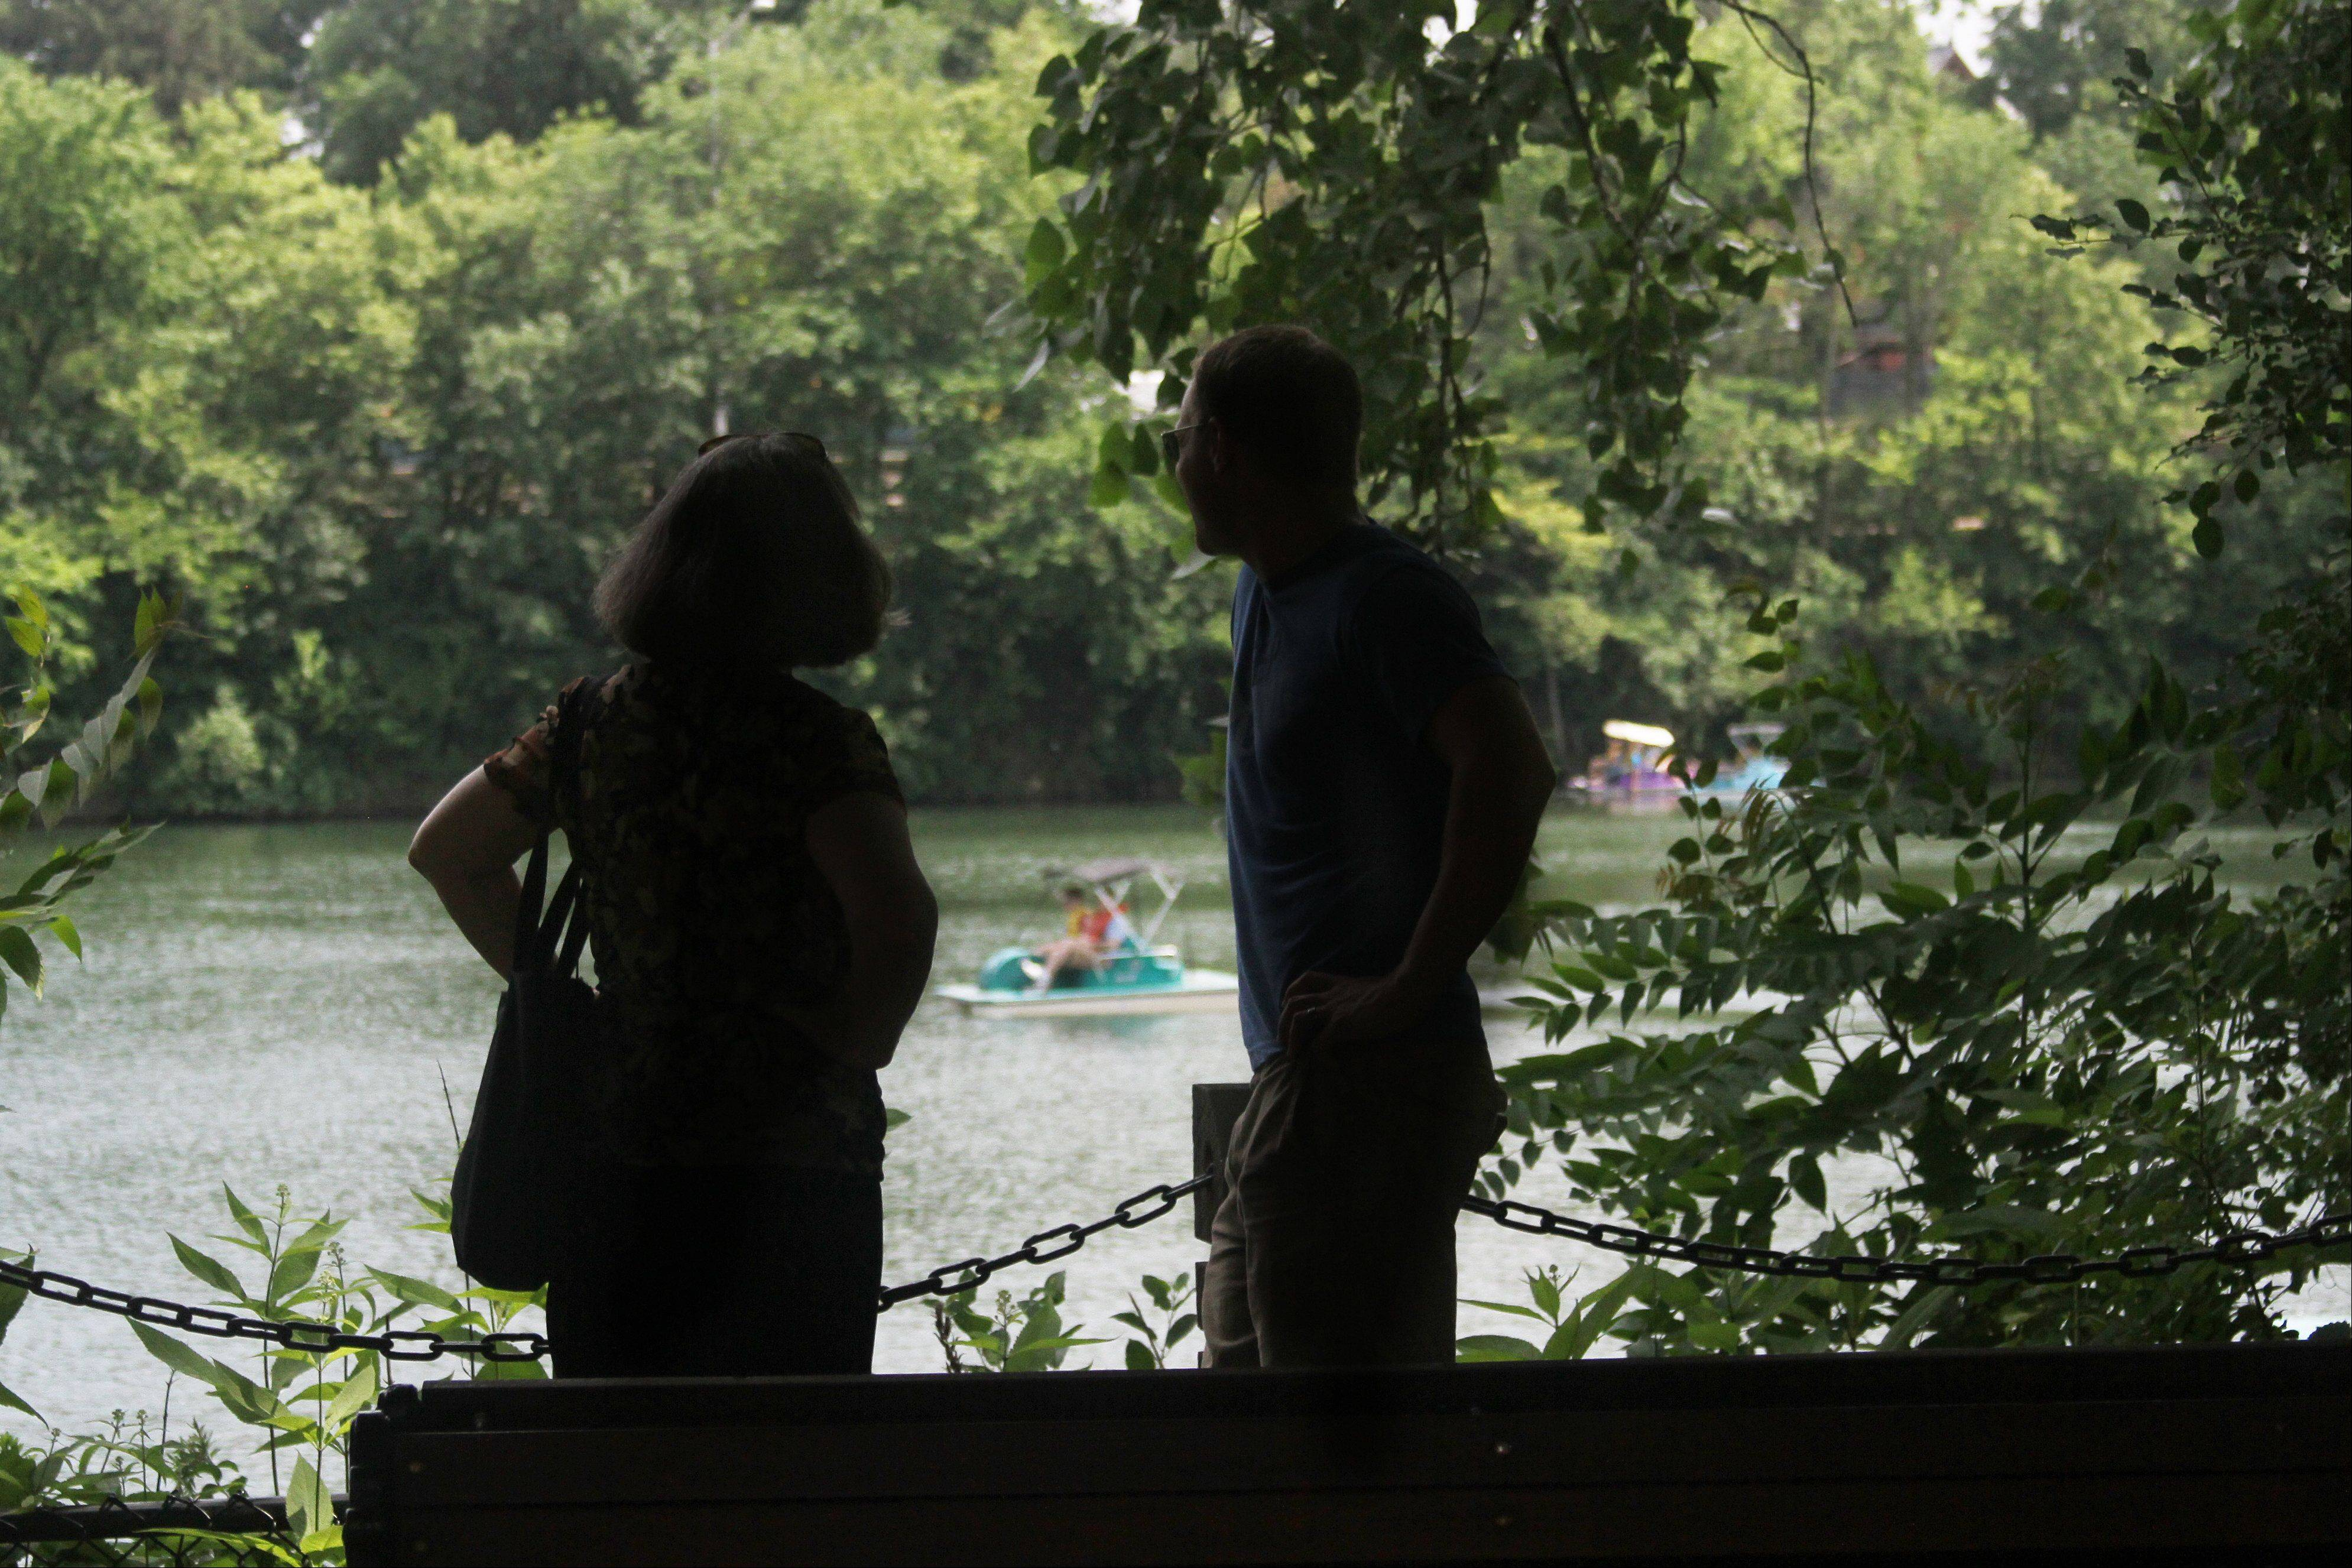 Paddleboats are set to be joined by kayaks this summer in the Paddleboat Quarry along the Naperville Riverwalk, park district officials said.